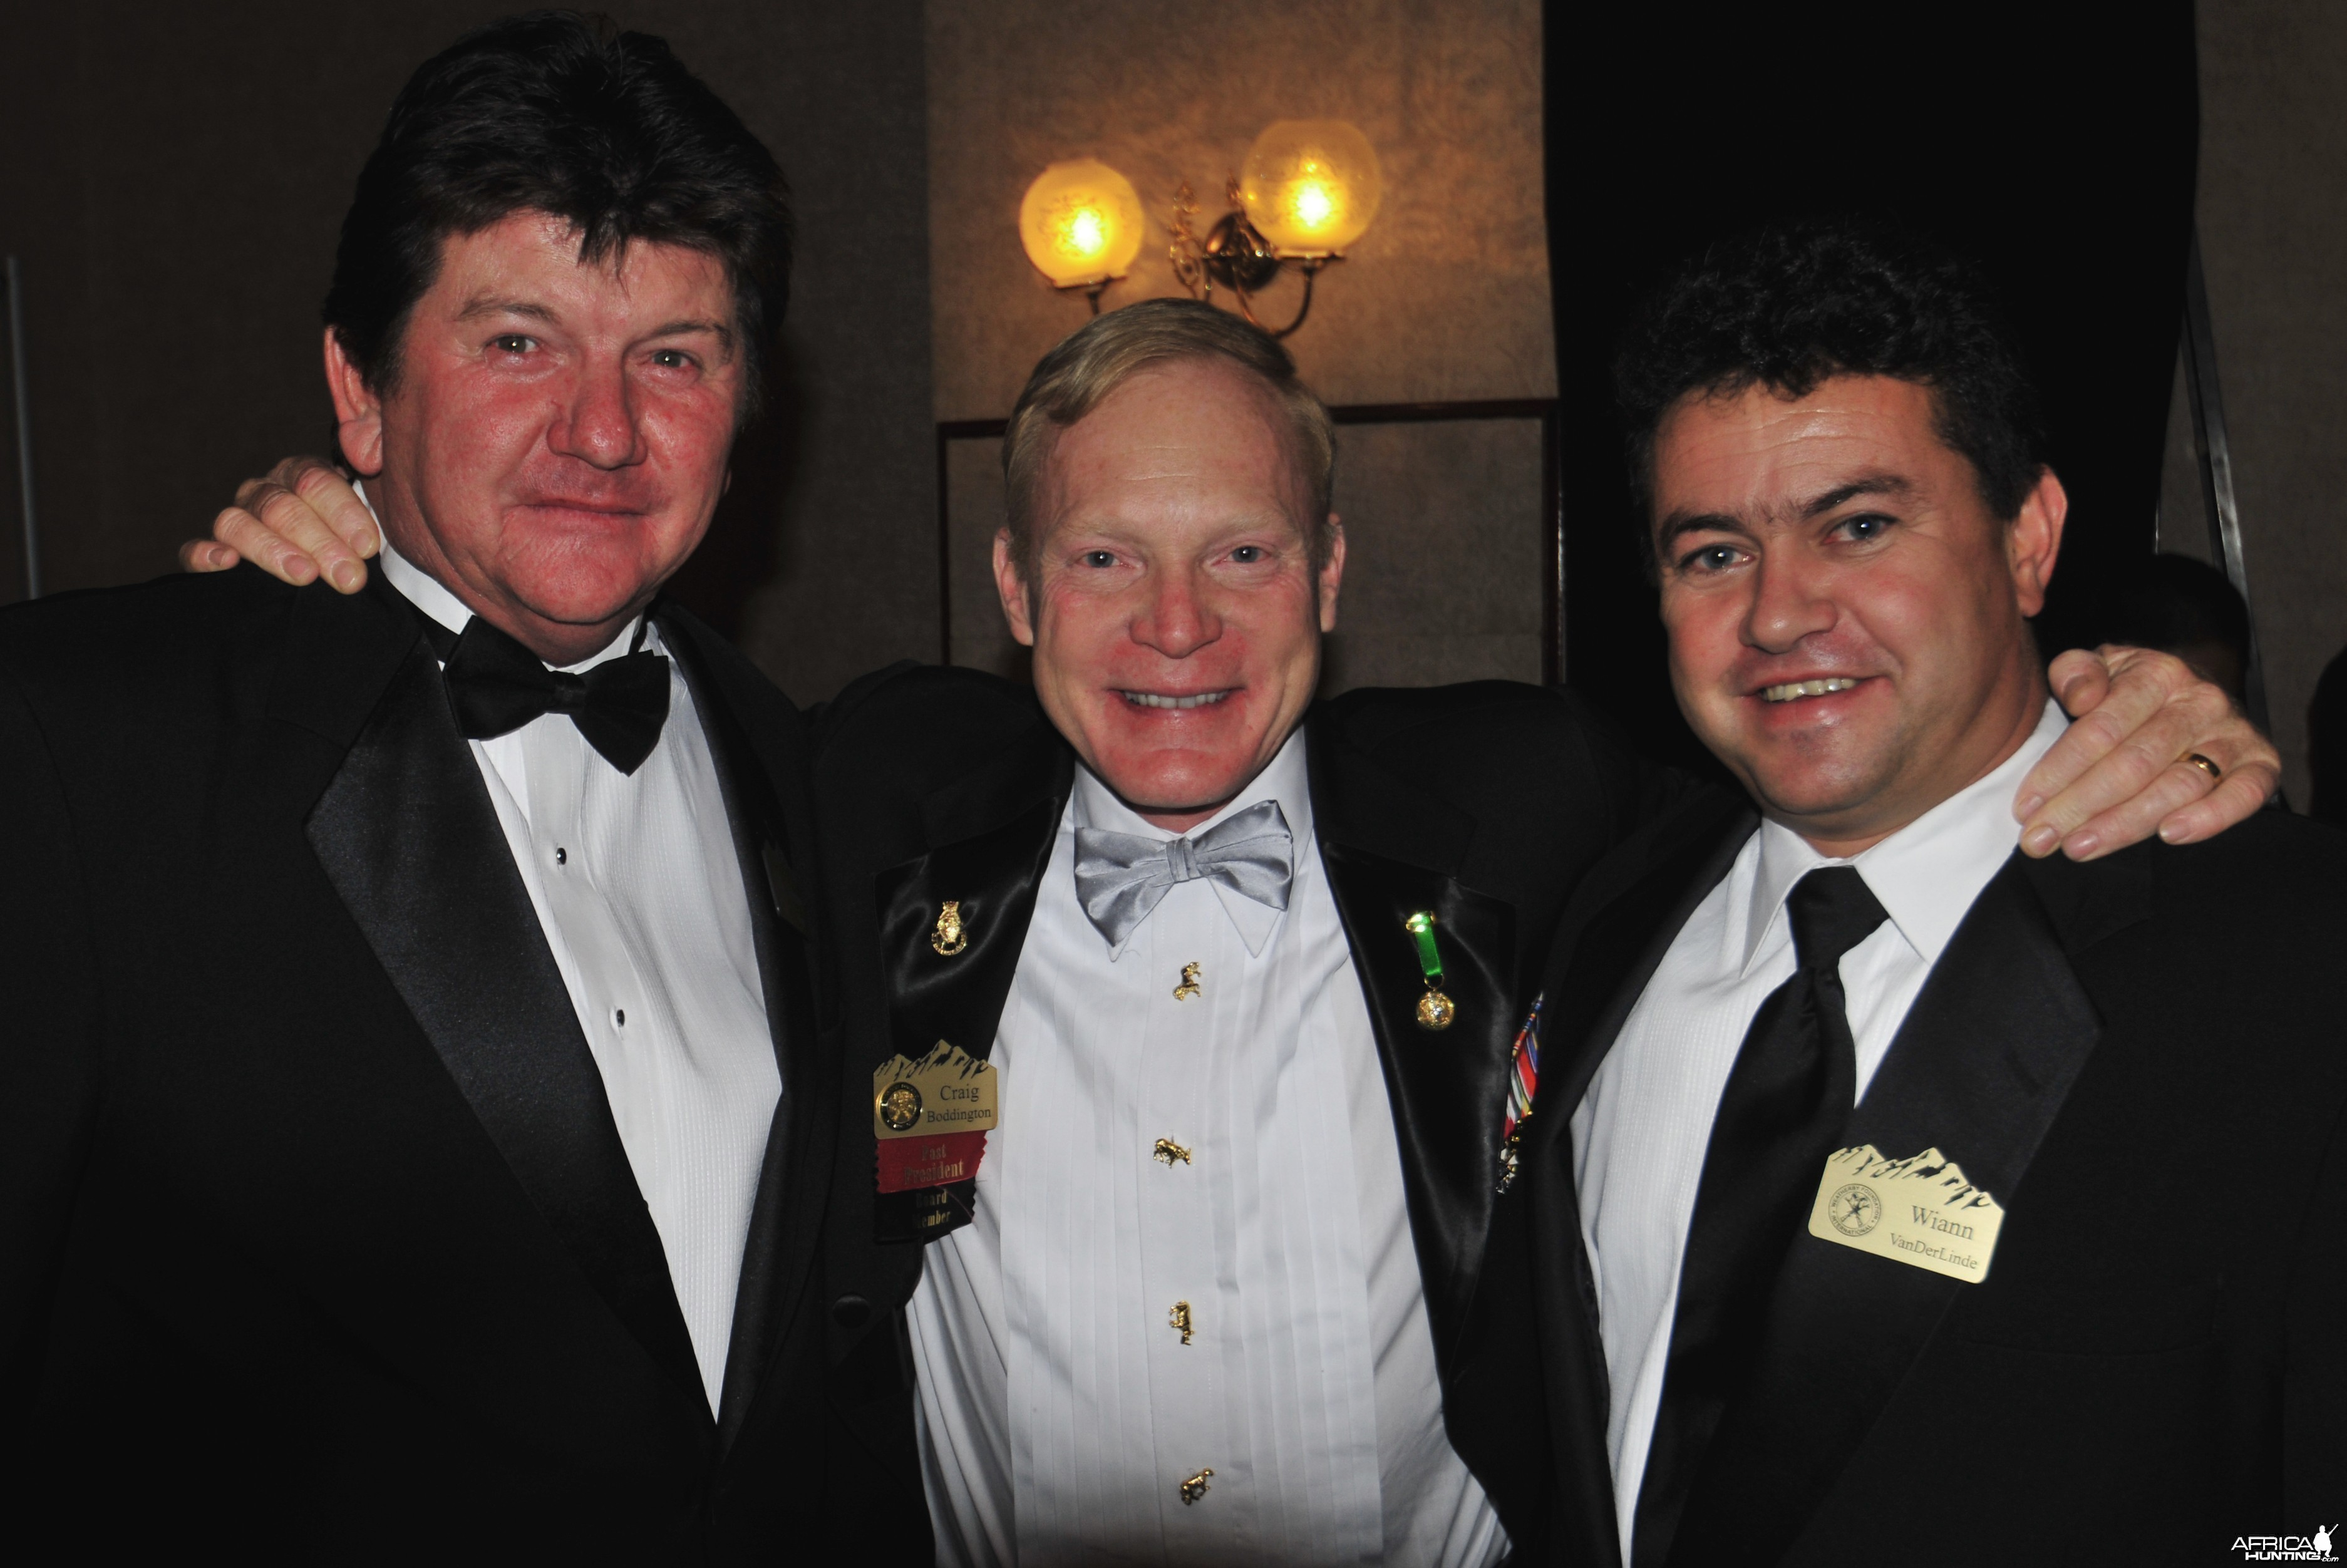 Johnny Vivier, Craig Boddington and Wiaan van der Linde